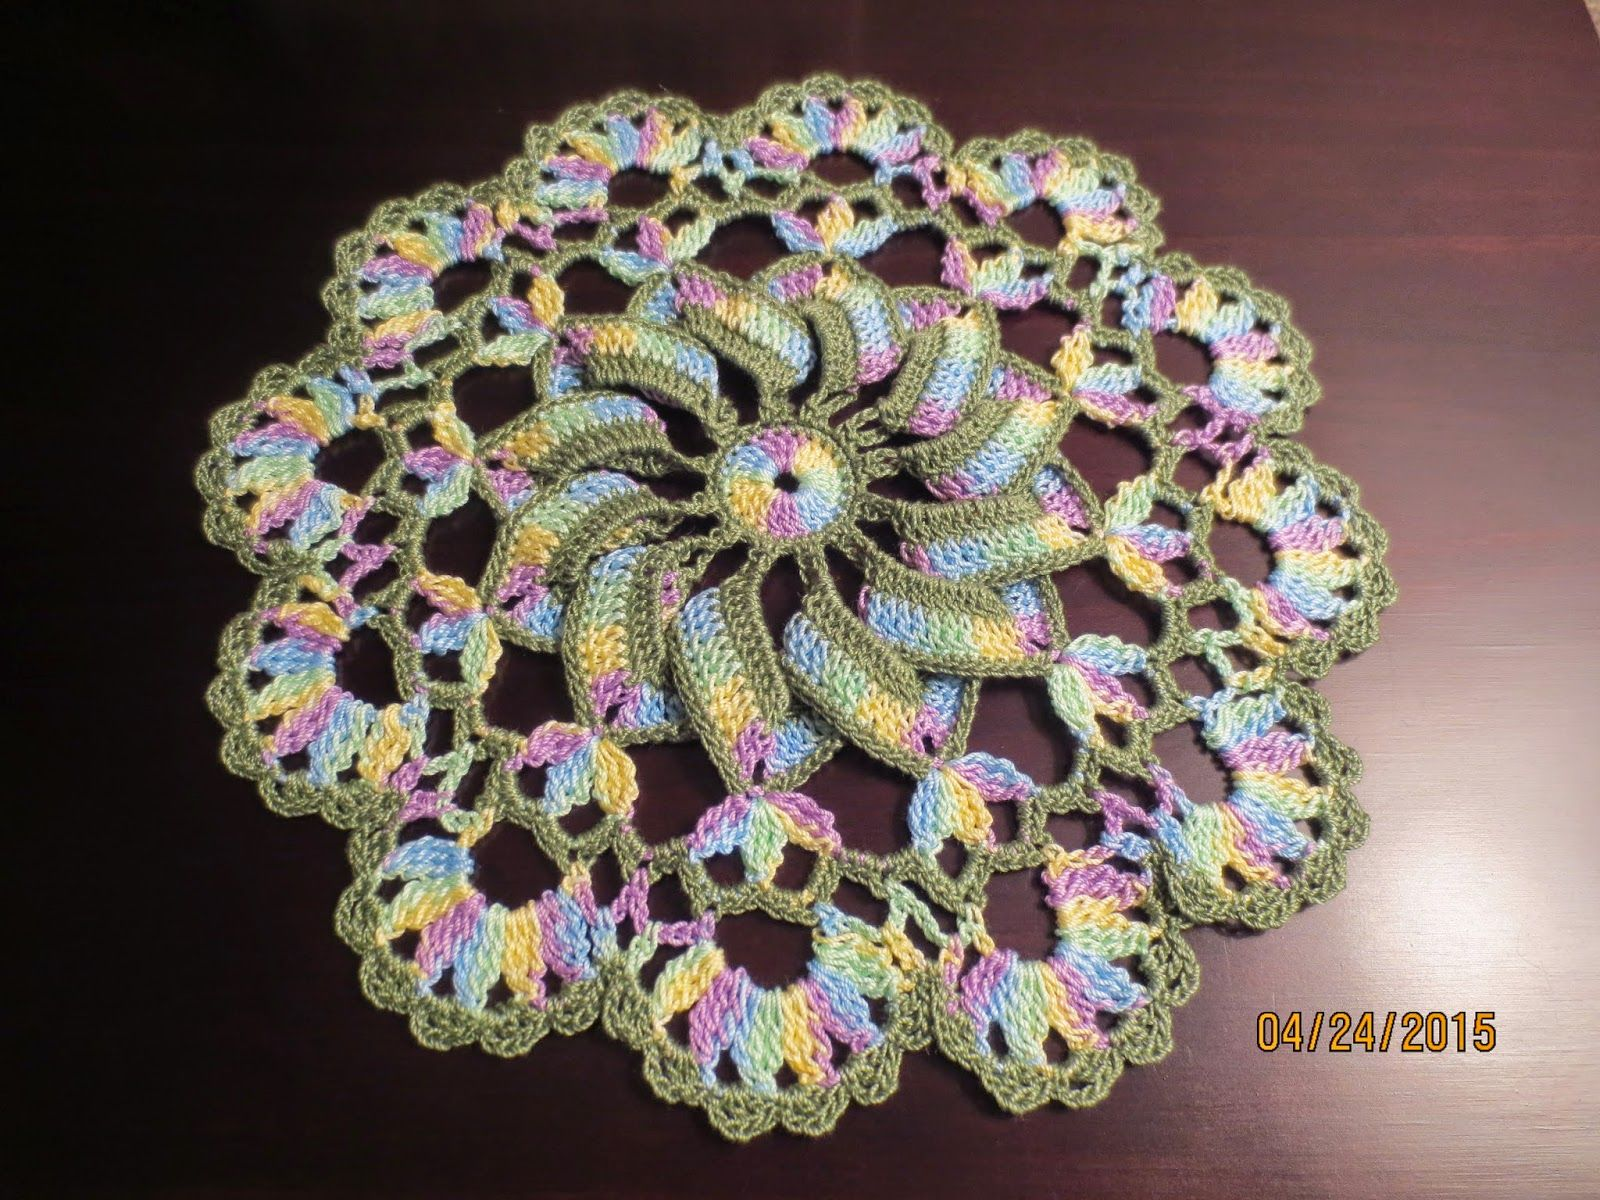 Bellacrochet pretty pinwheel doily a free crochet pattern for bellacrochet pretty pinwheel doily a free crochet pattern for you bankloansurffo Image collections